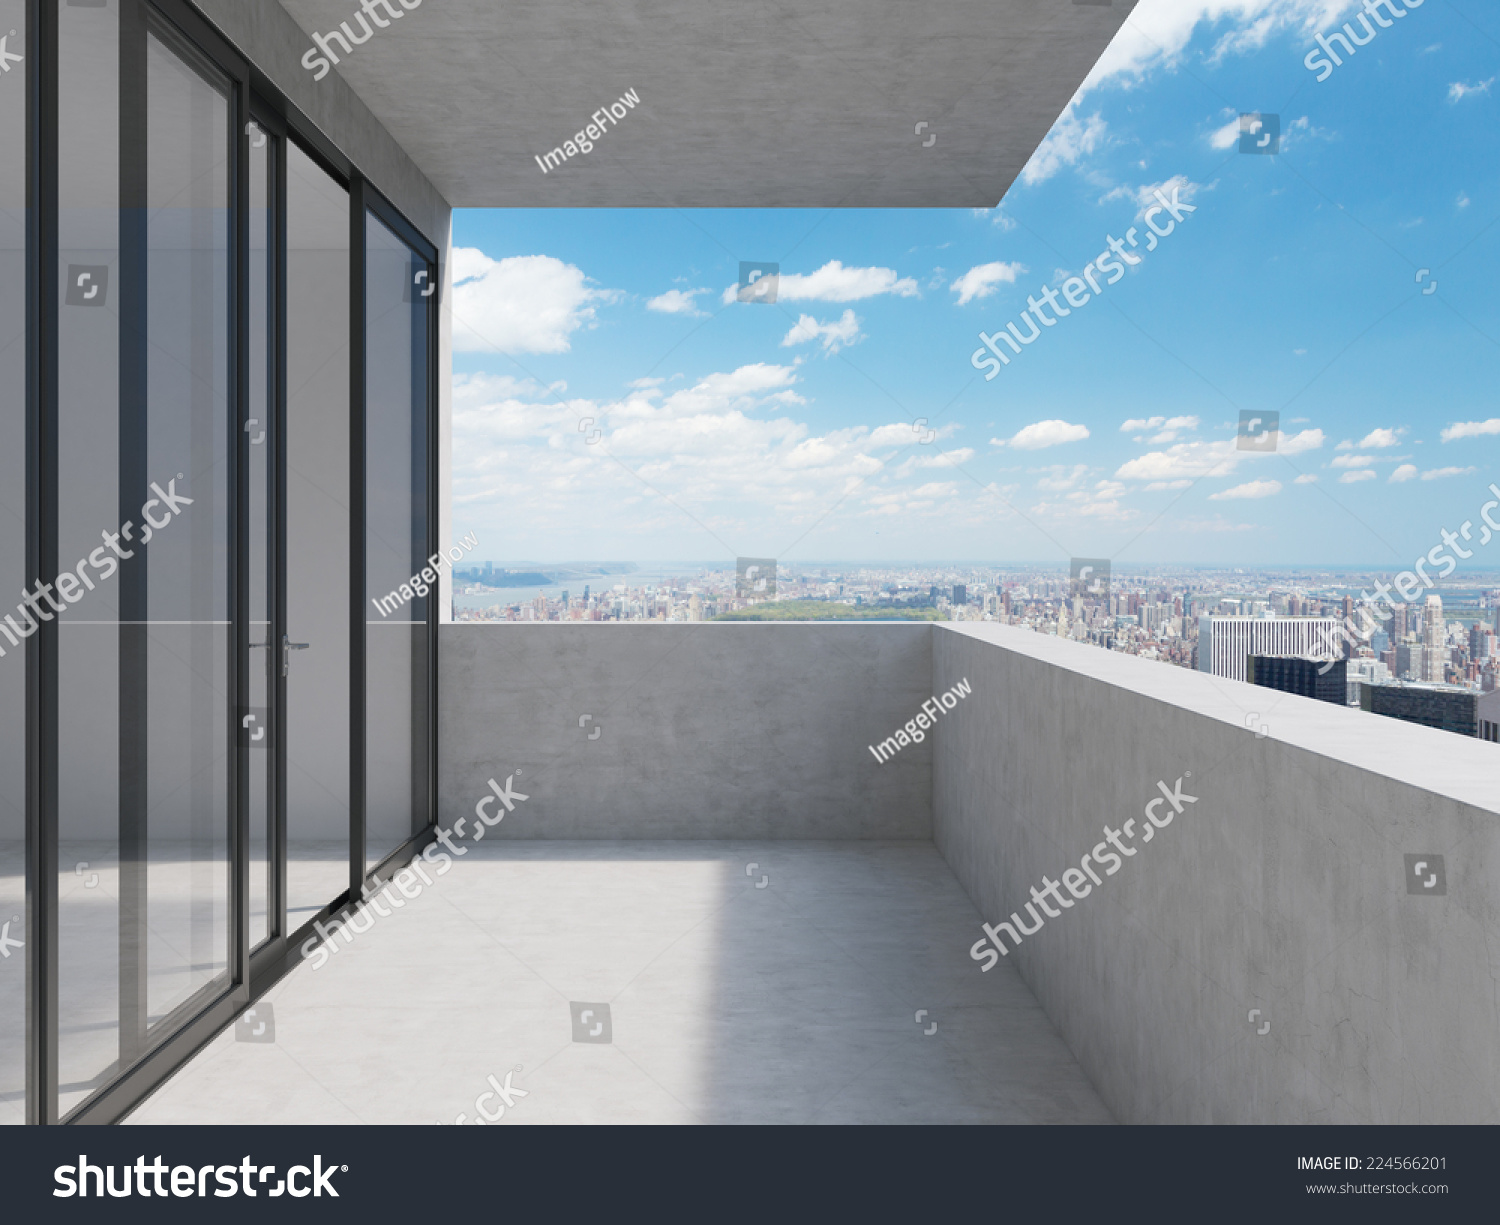 Concept future perspectives empty modern balcony stock for Balcony concept